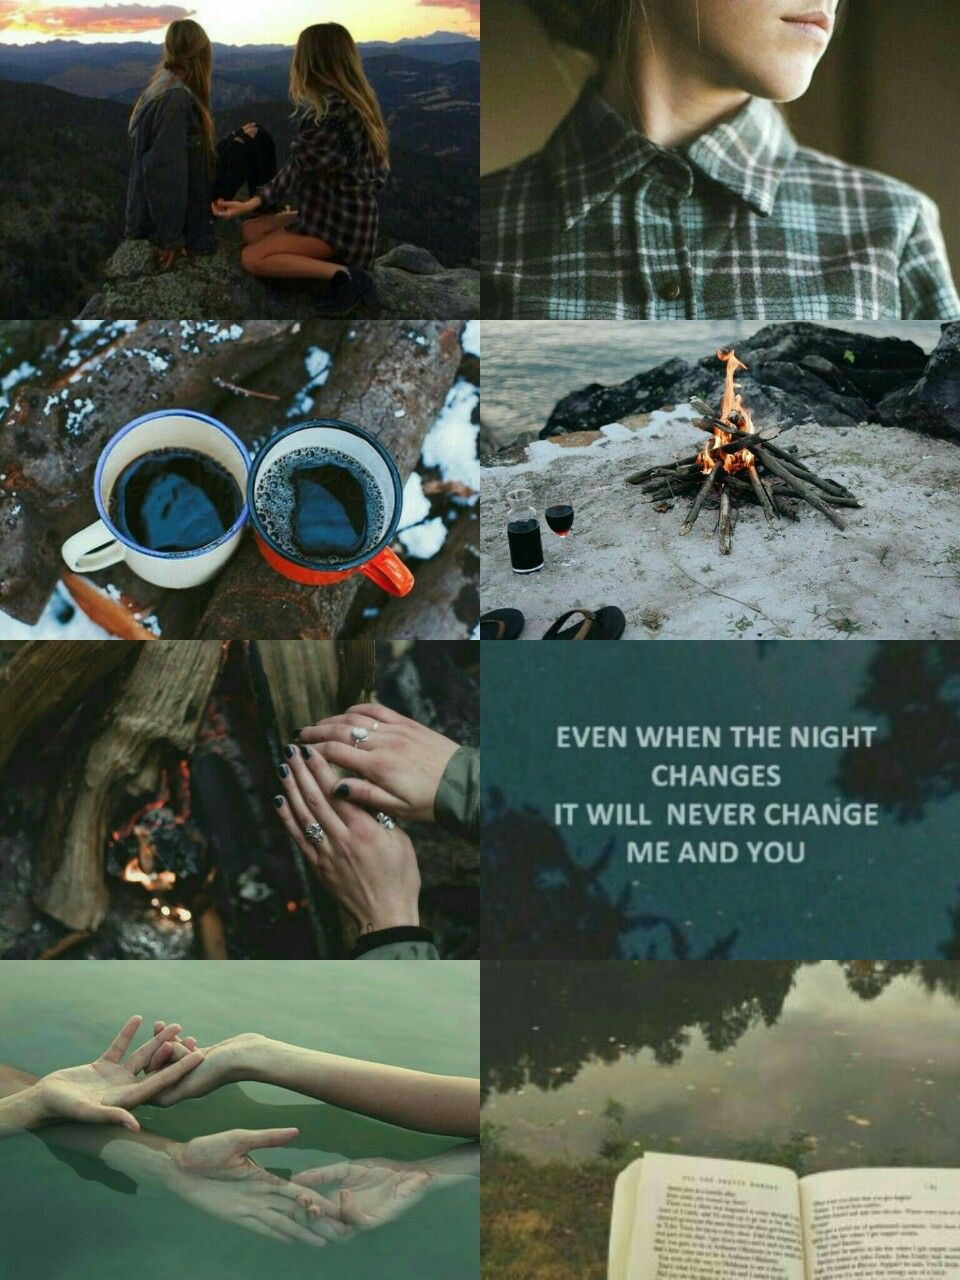 lesbian camping aesthetic | aesthetic boards | pinterest | lesbian